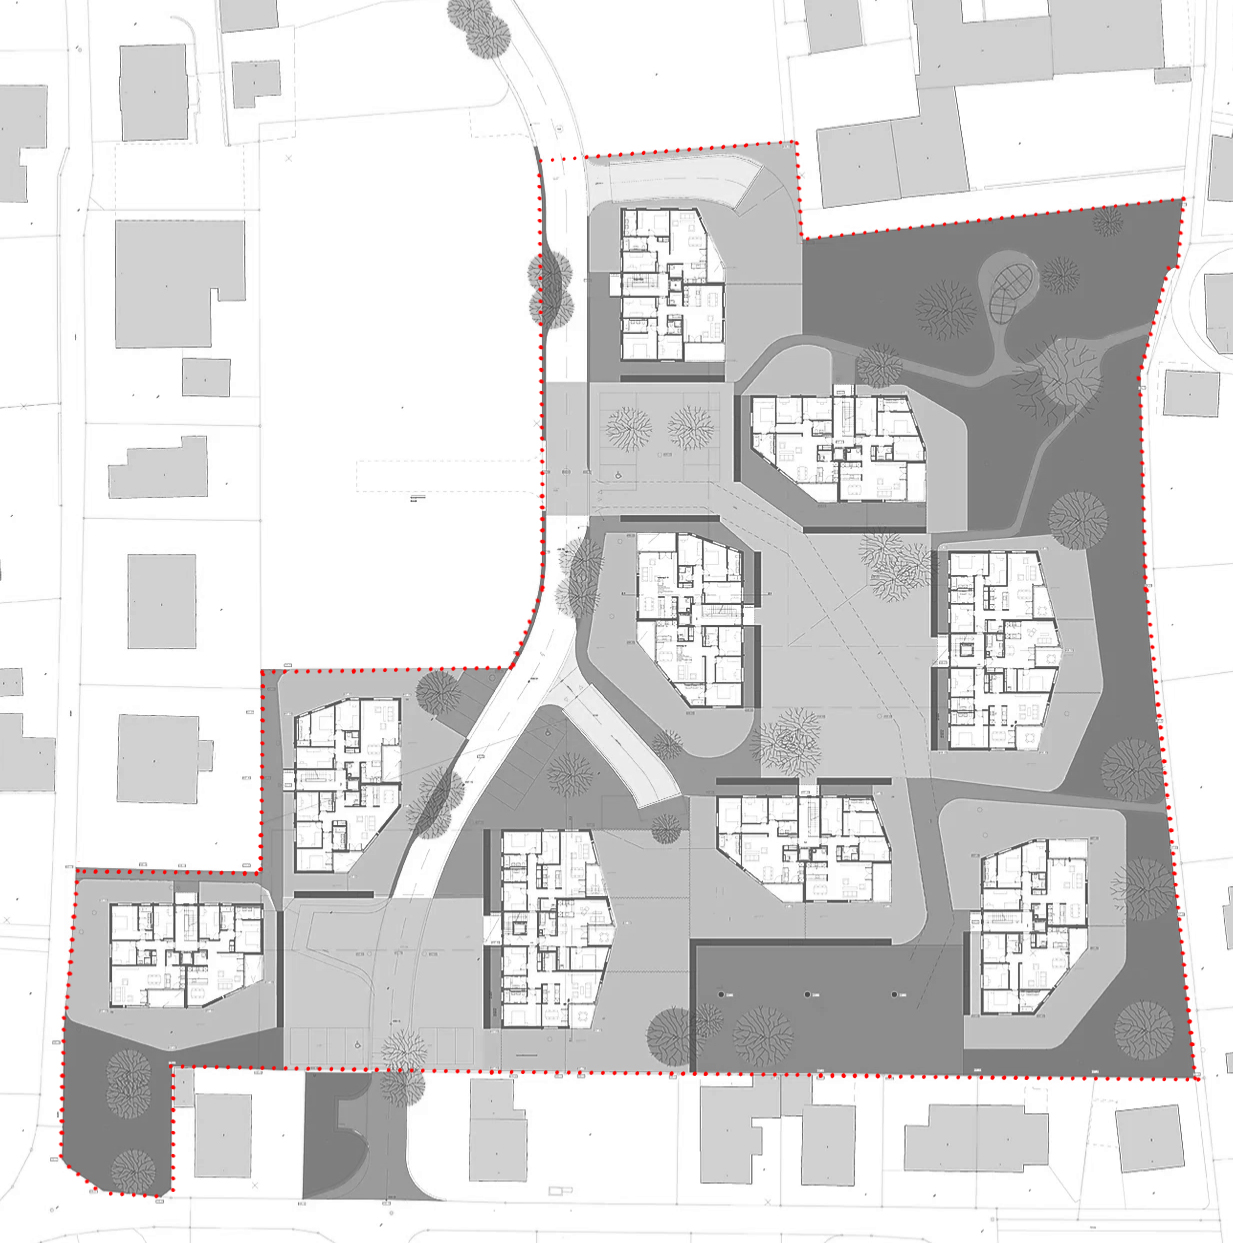 Mels Housing_master plan